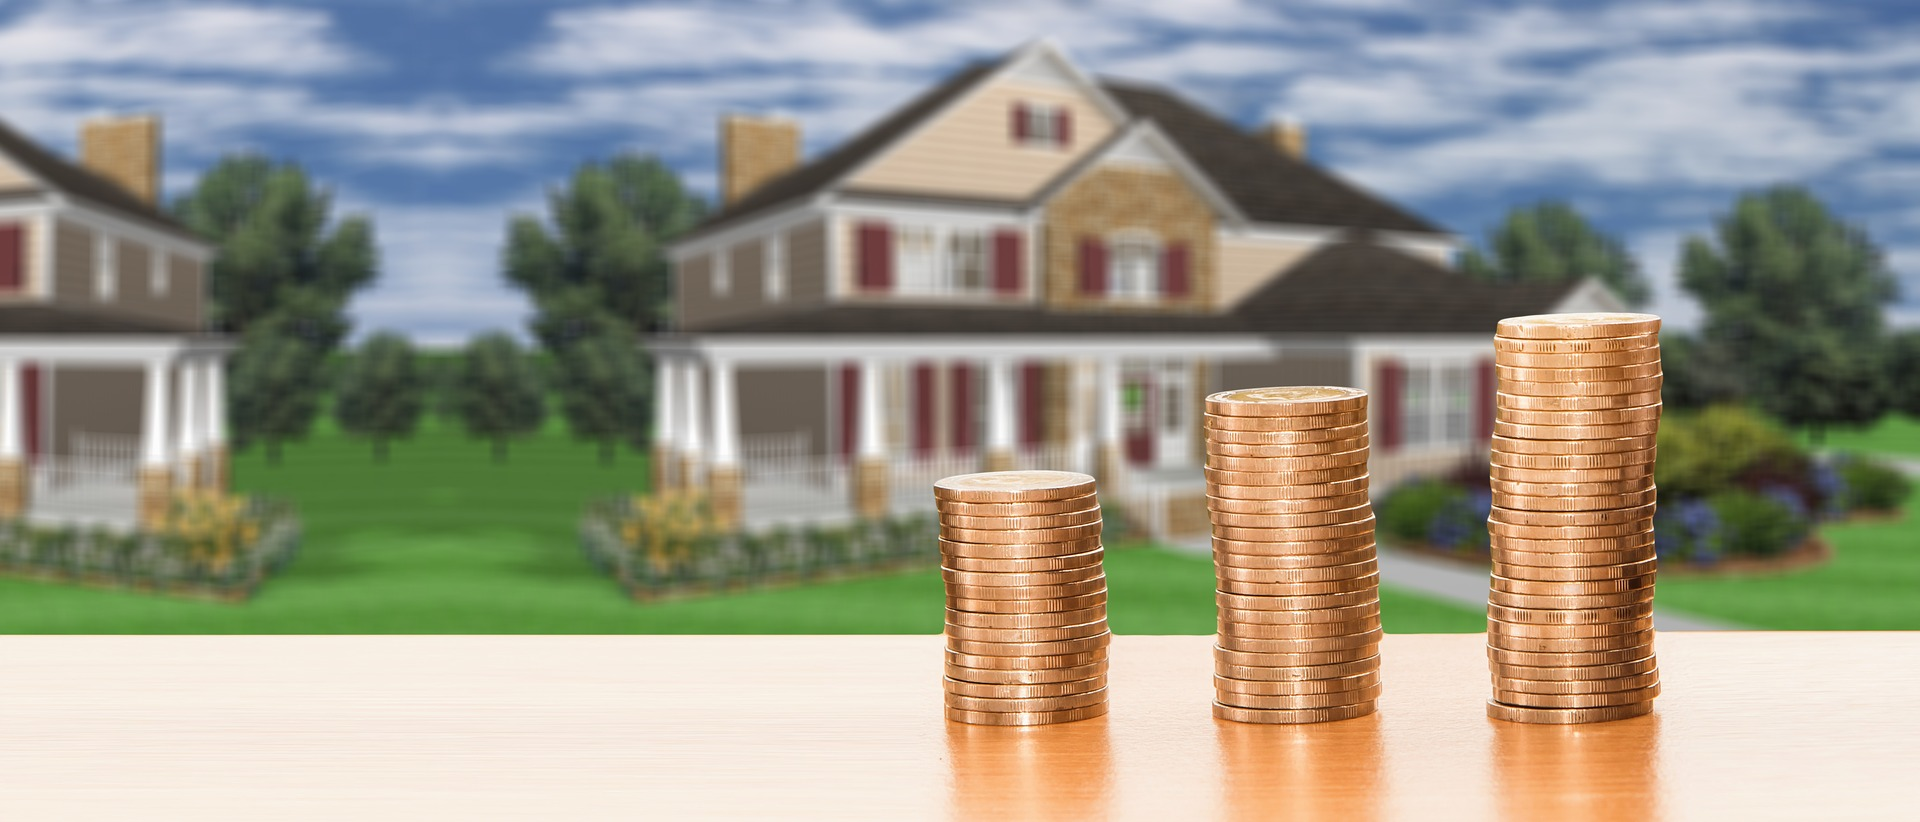 Do You Pay Tax When You Sell Your House